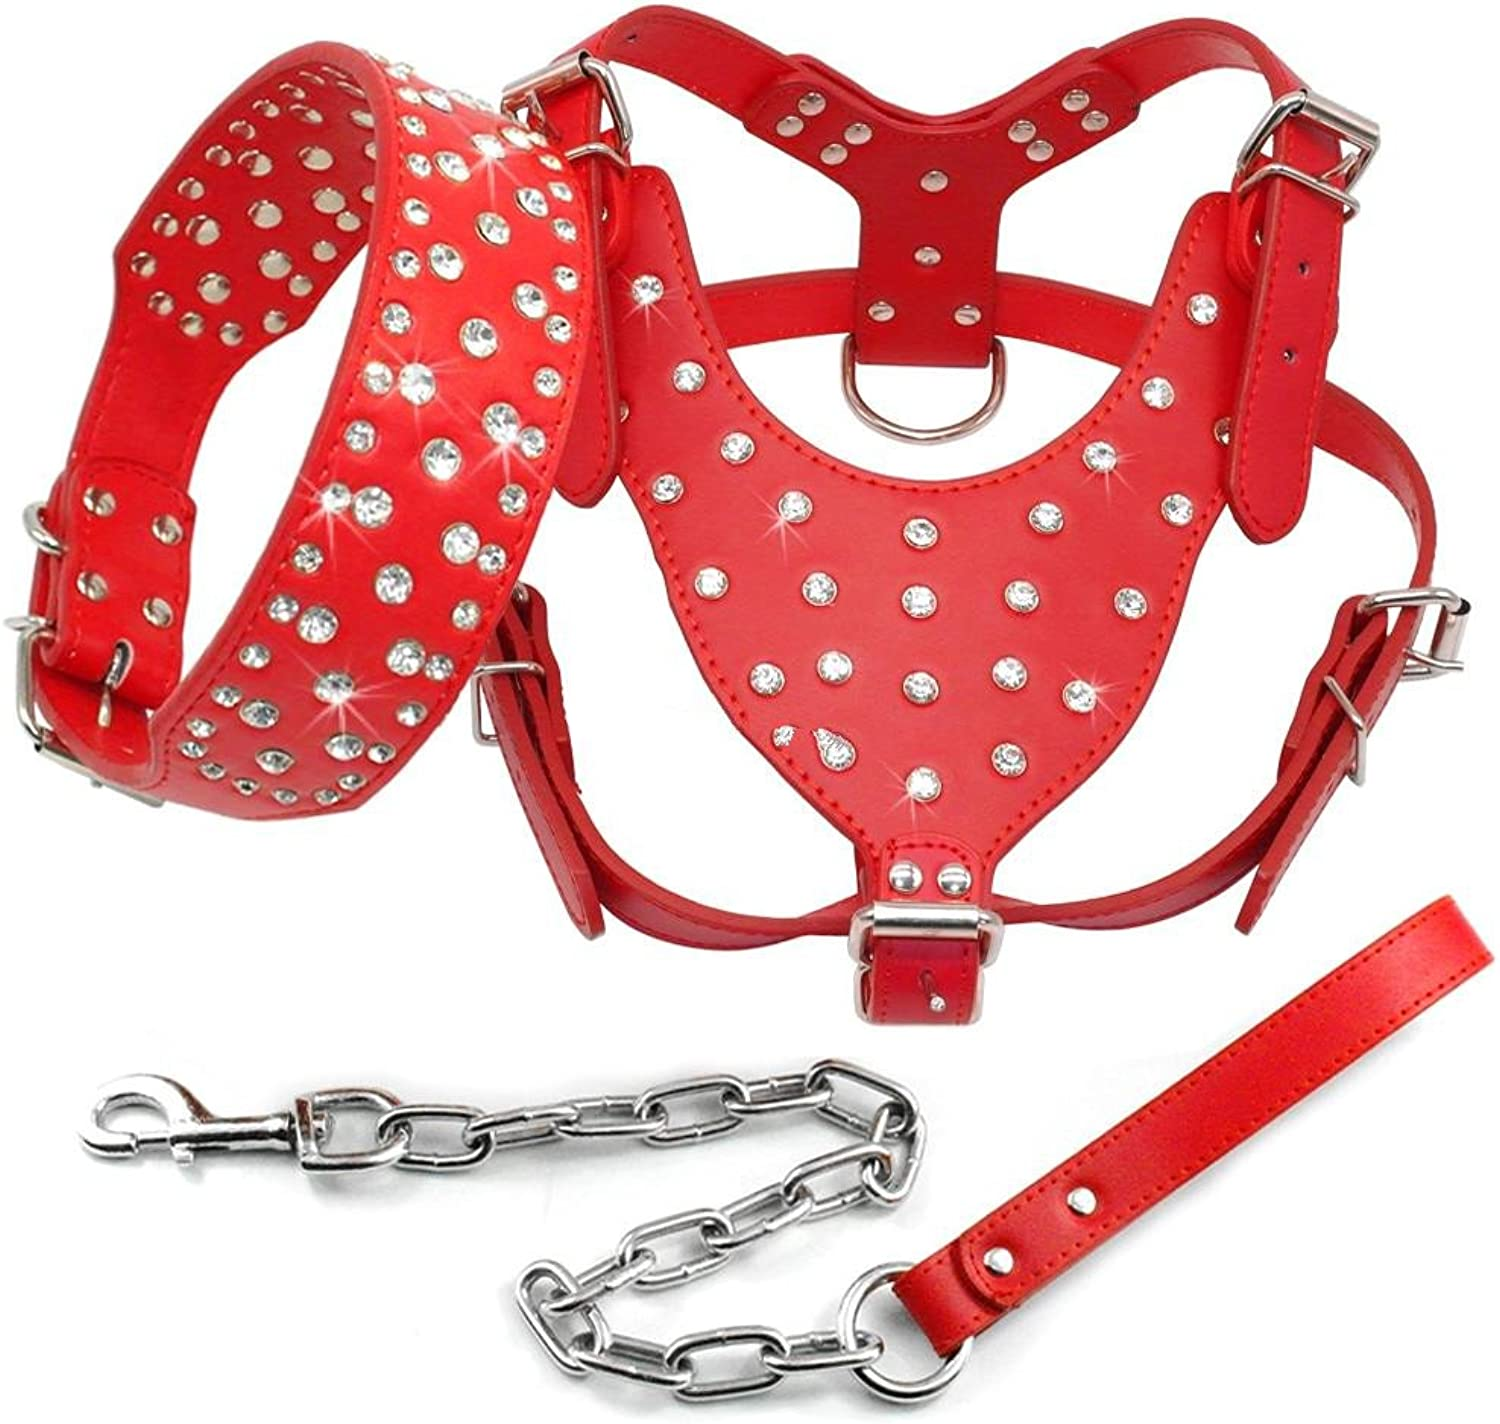 Benala Shine Bling Rhinestone Studded Leather Dog Harness&Collar&Leash Walking Set 3Pcs Medium Large Dogs Pitbull Boxer Terrier,Red,XL